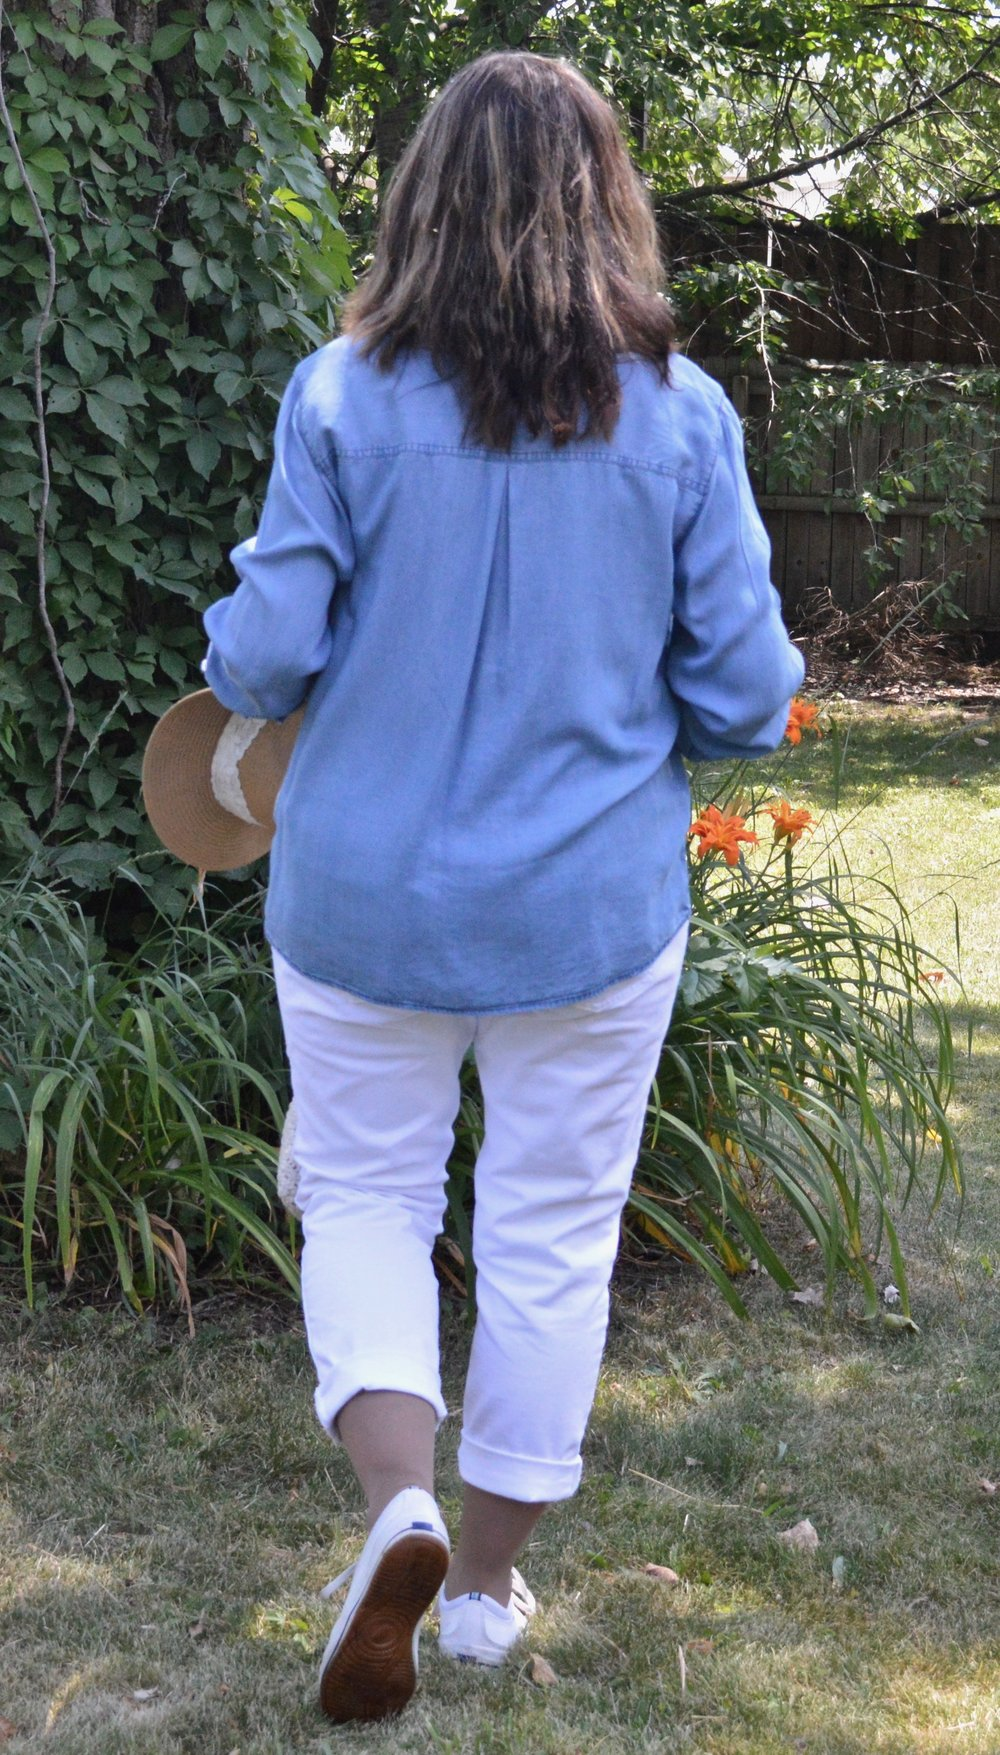 Outfit inspiration - chambray shirt and white pants